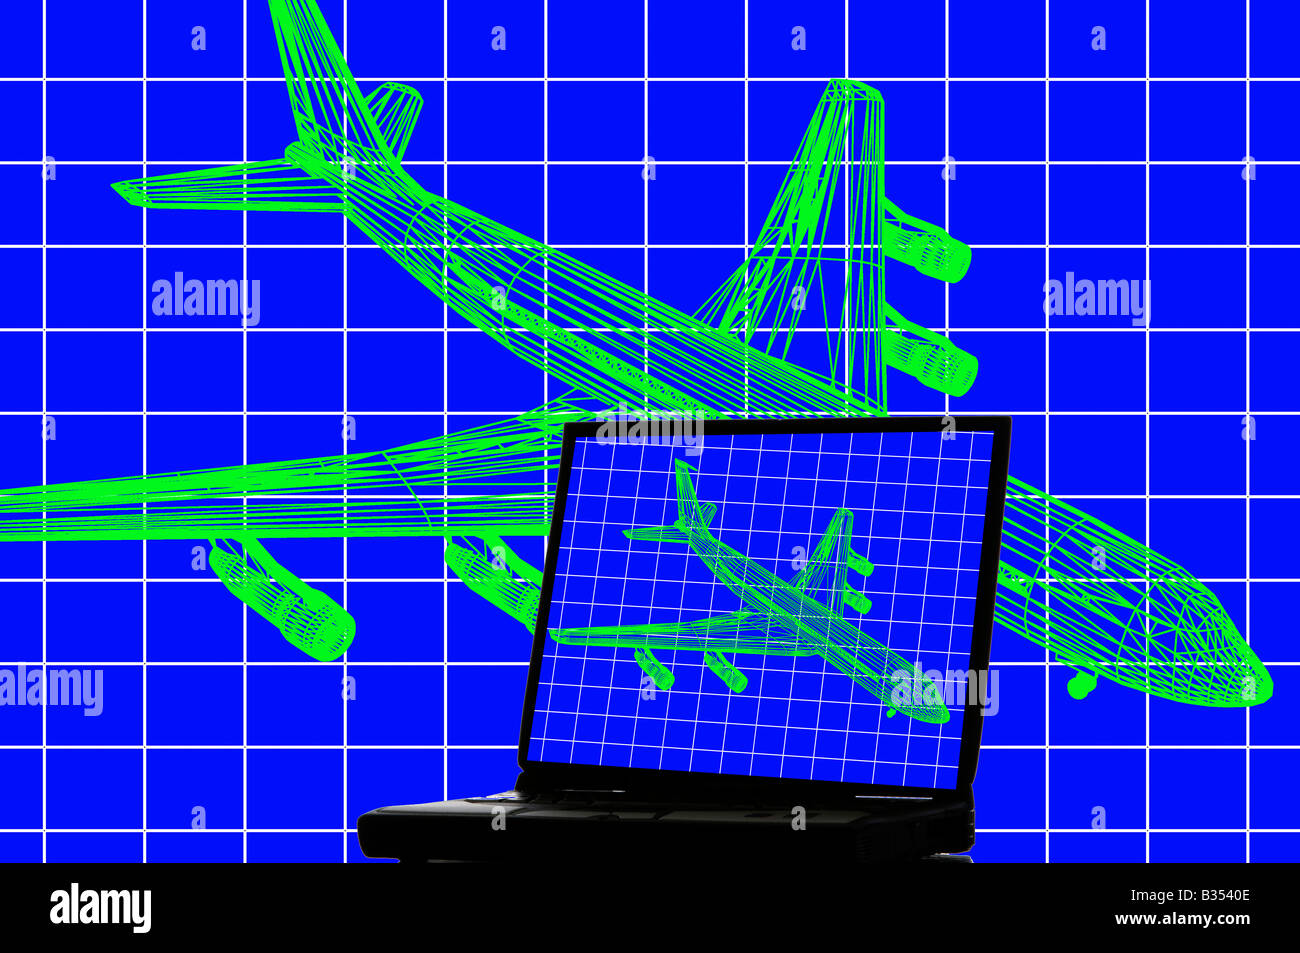 CAD engineering aeronautical wire frame image of jet